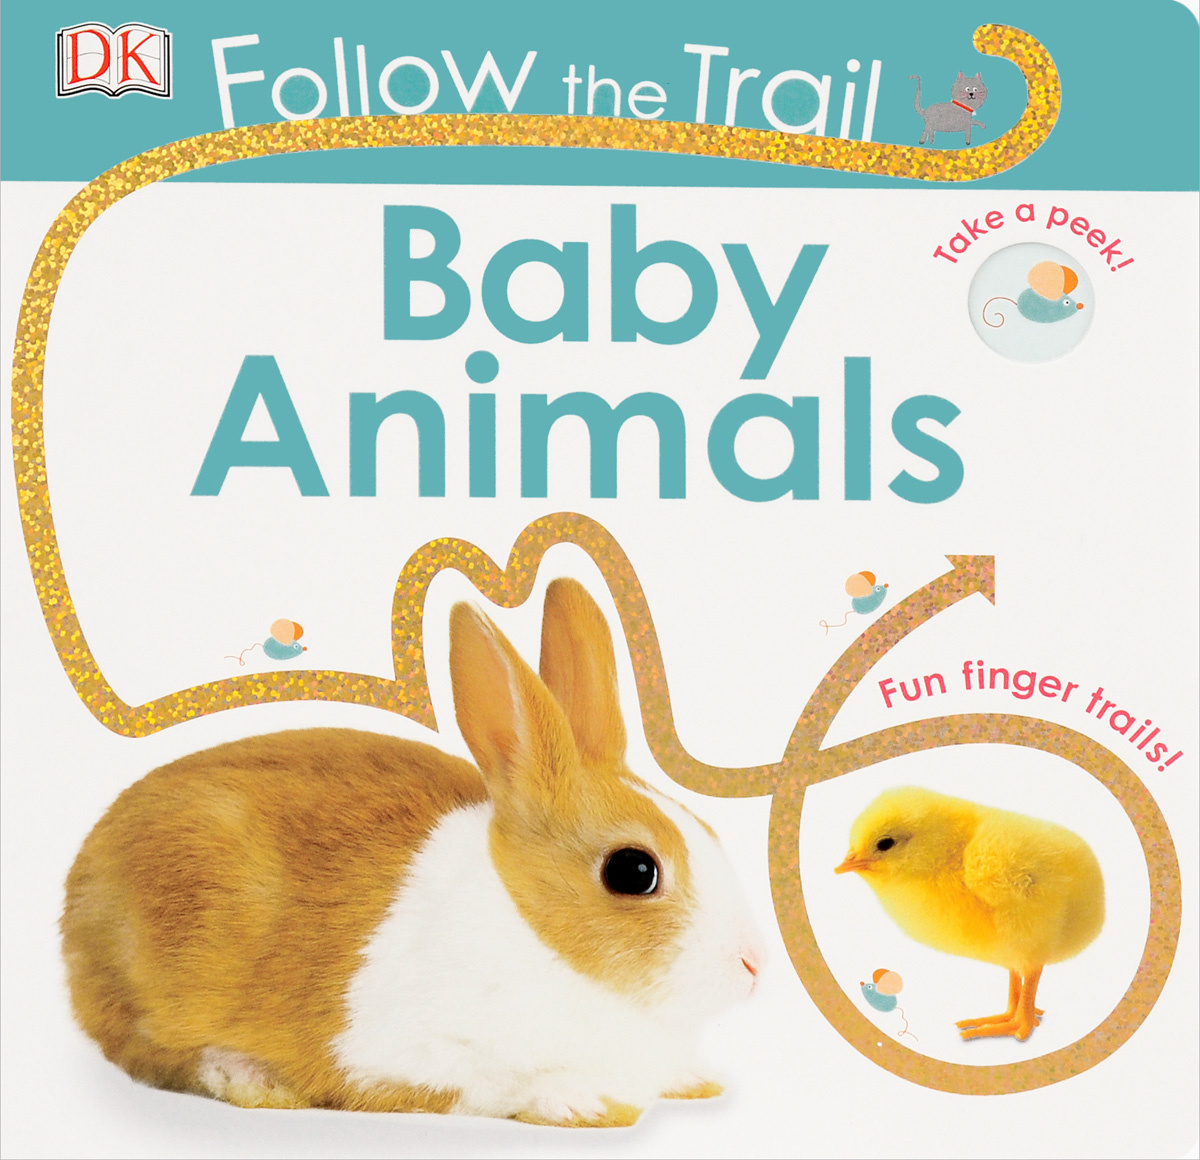 Follow the Trail Baby Animals #1